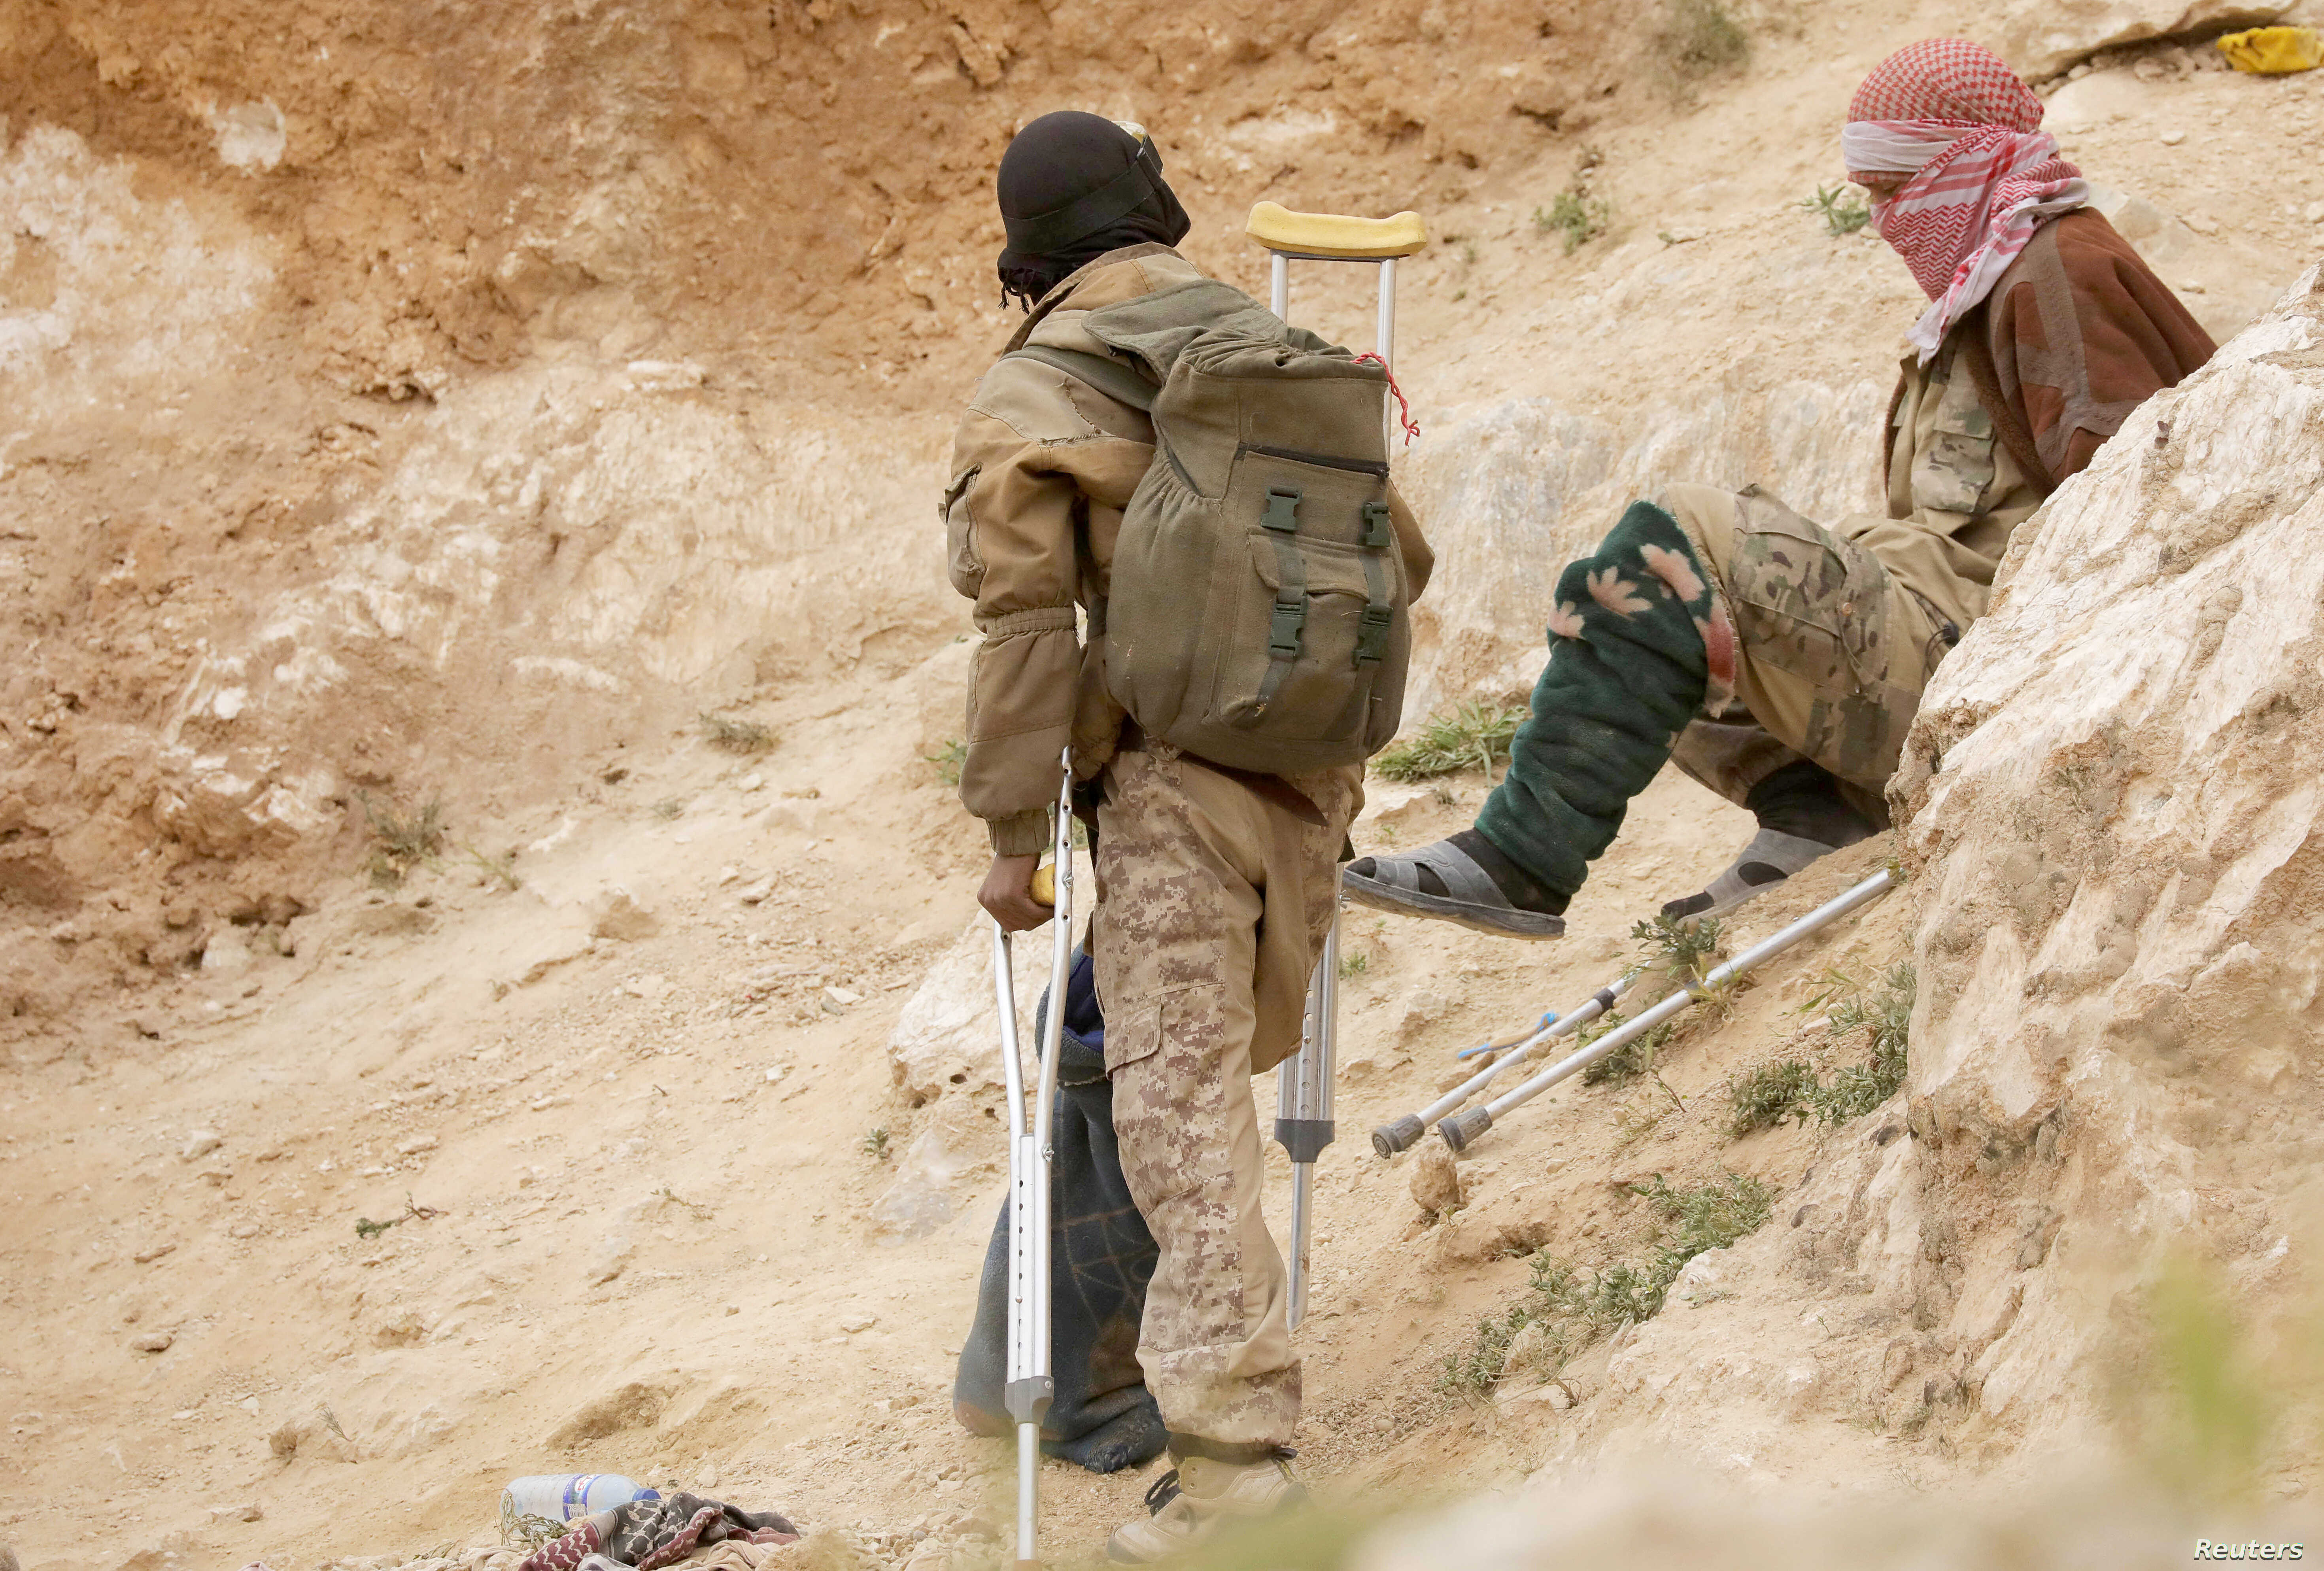 Injured Islamic state militants are seen in the village of Baghouz, Deir Al Zor province, Syria, March 14, 2019.